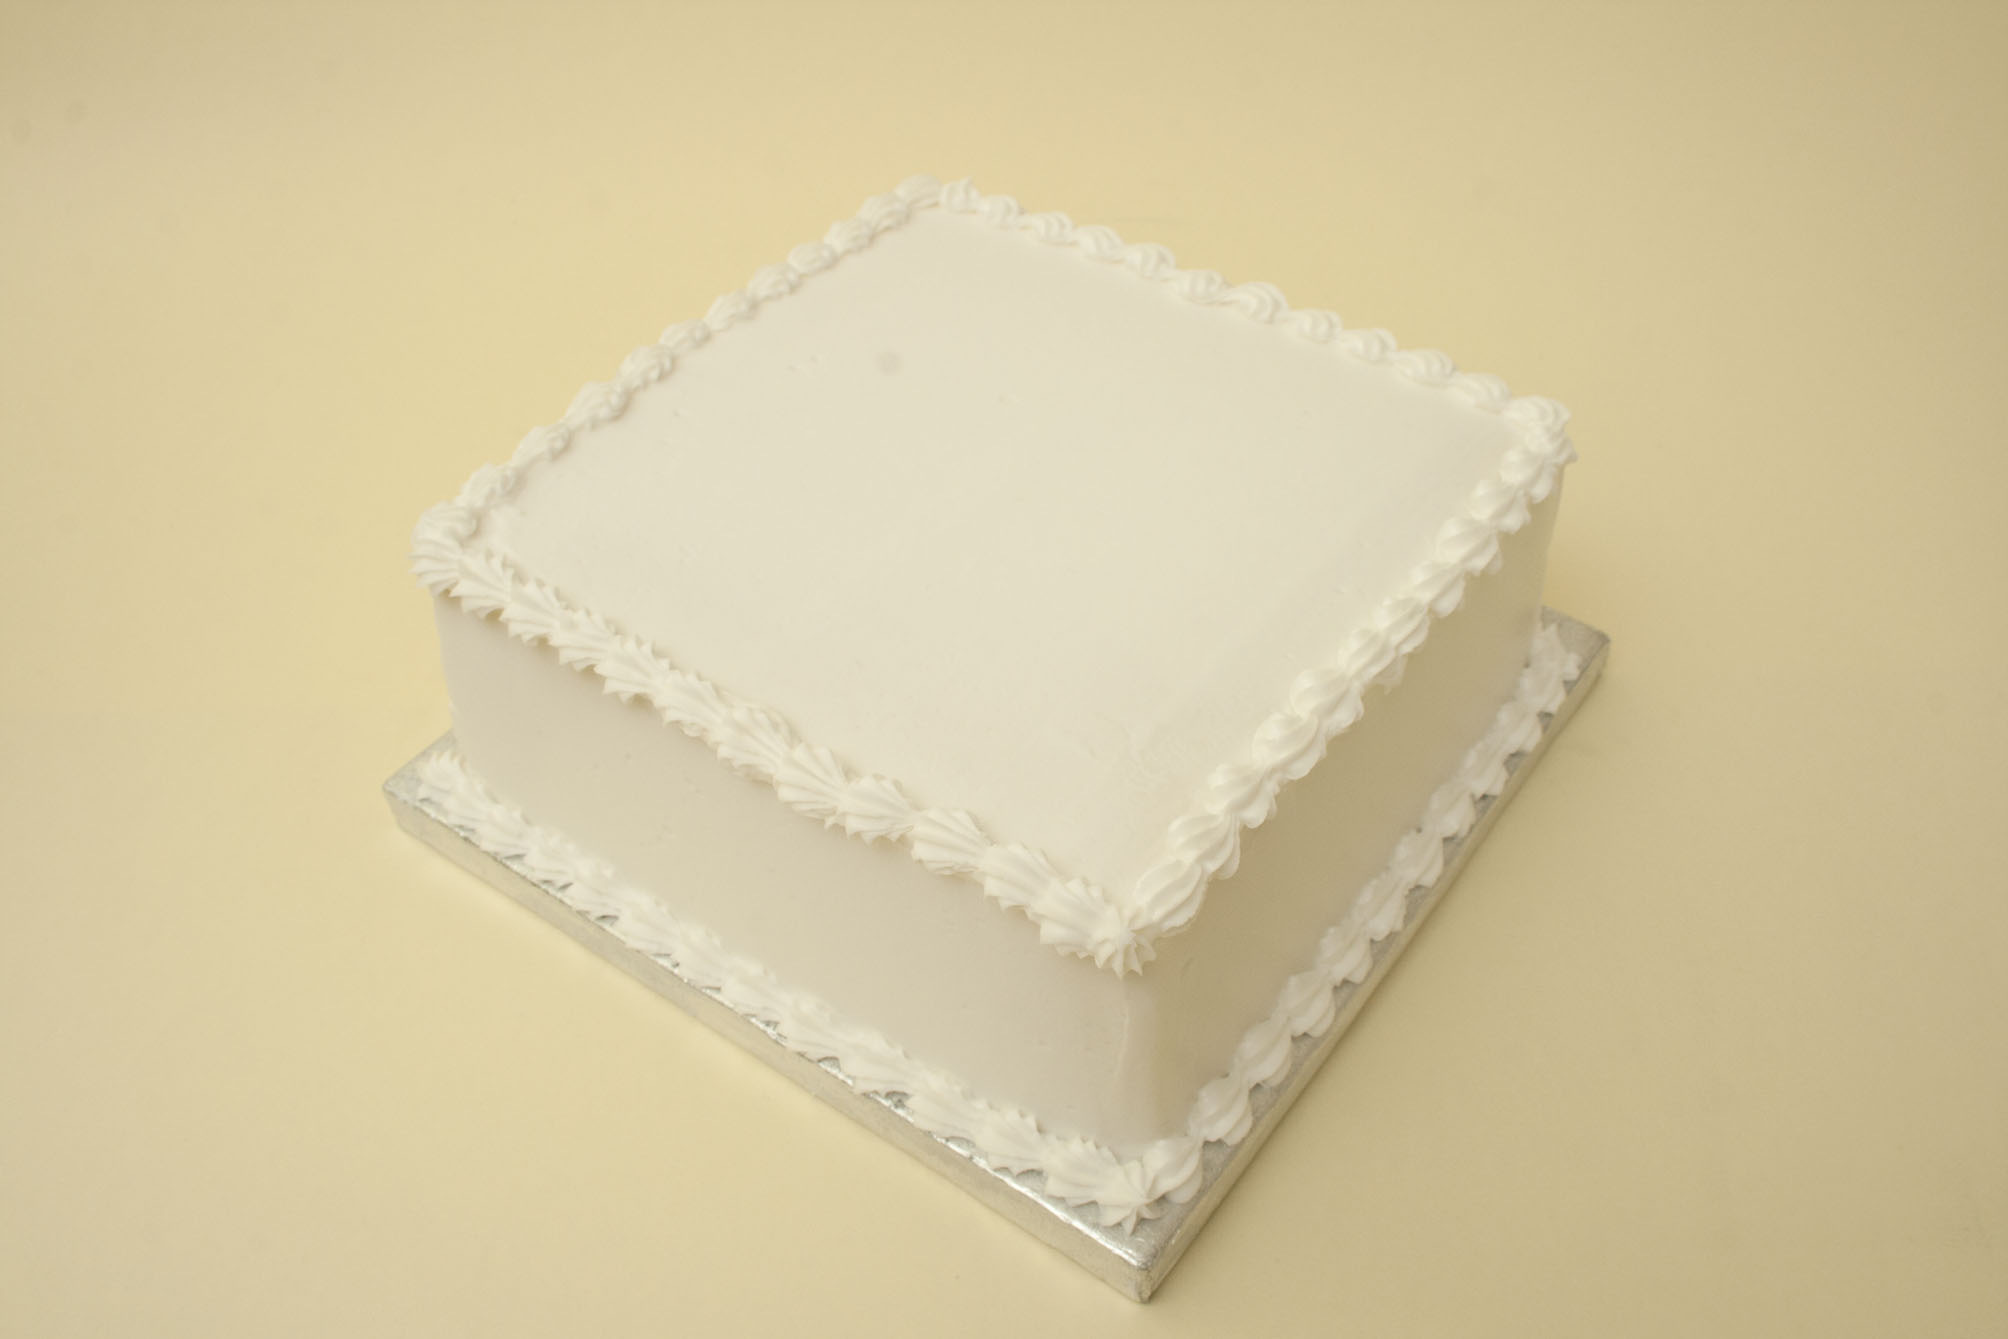 https://caroldeaconcakes.com/recipes/royal-icing/